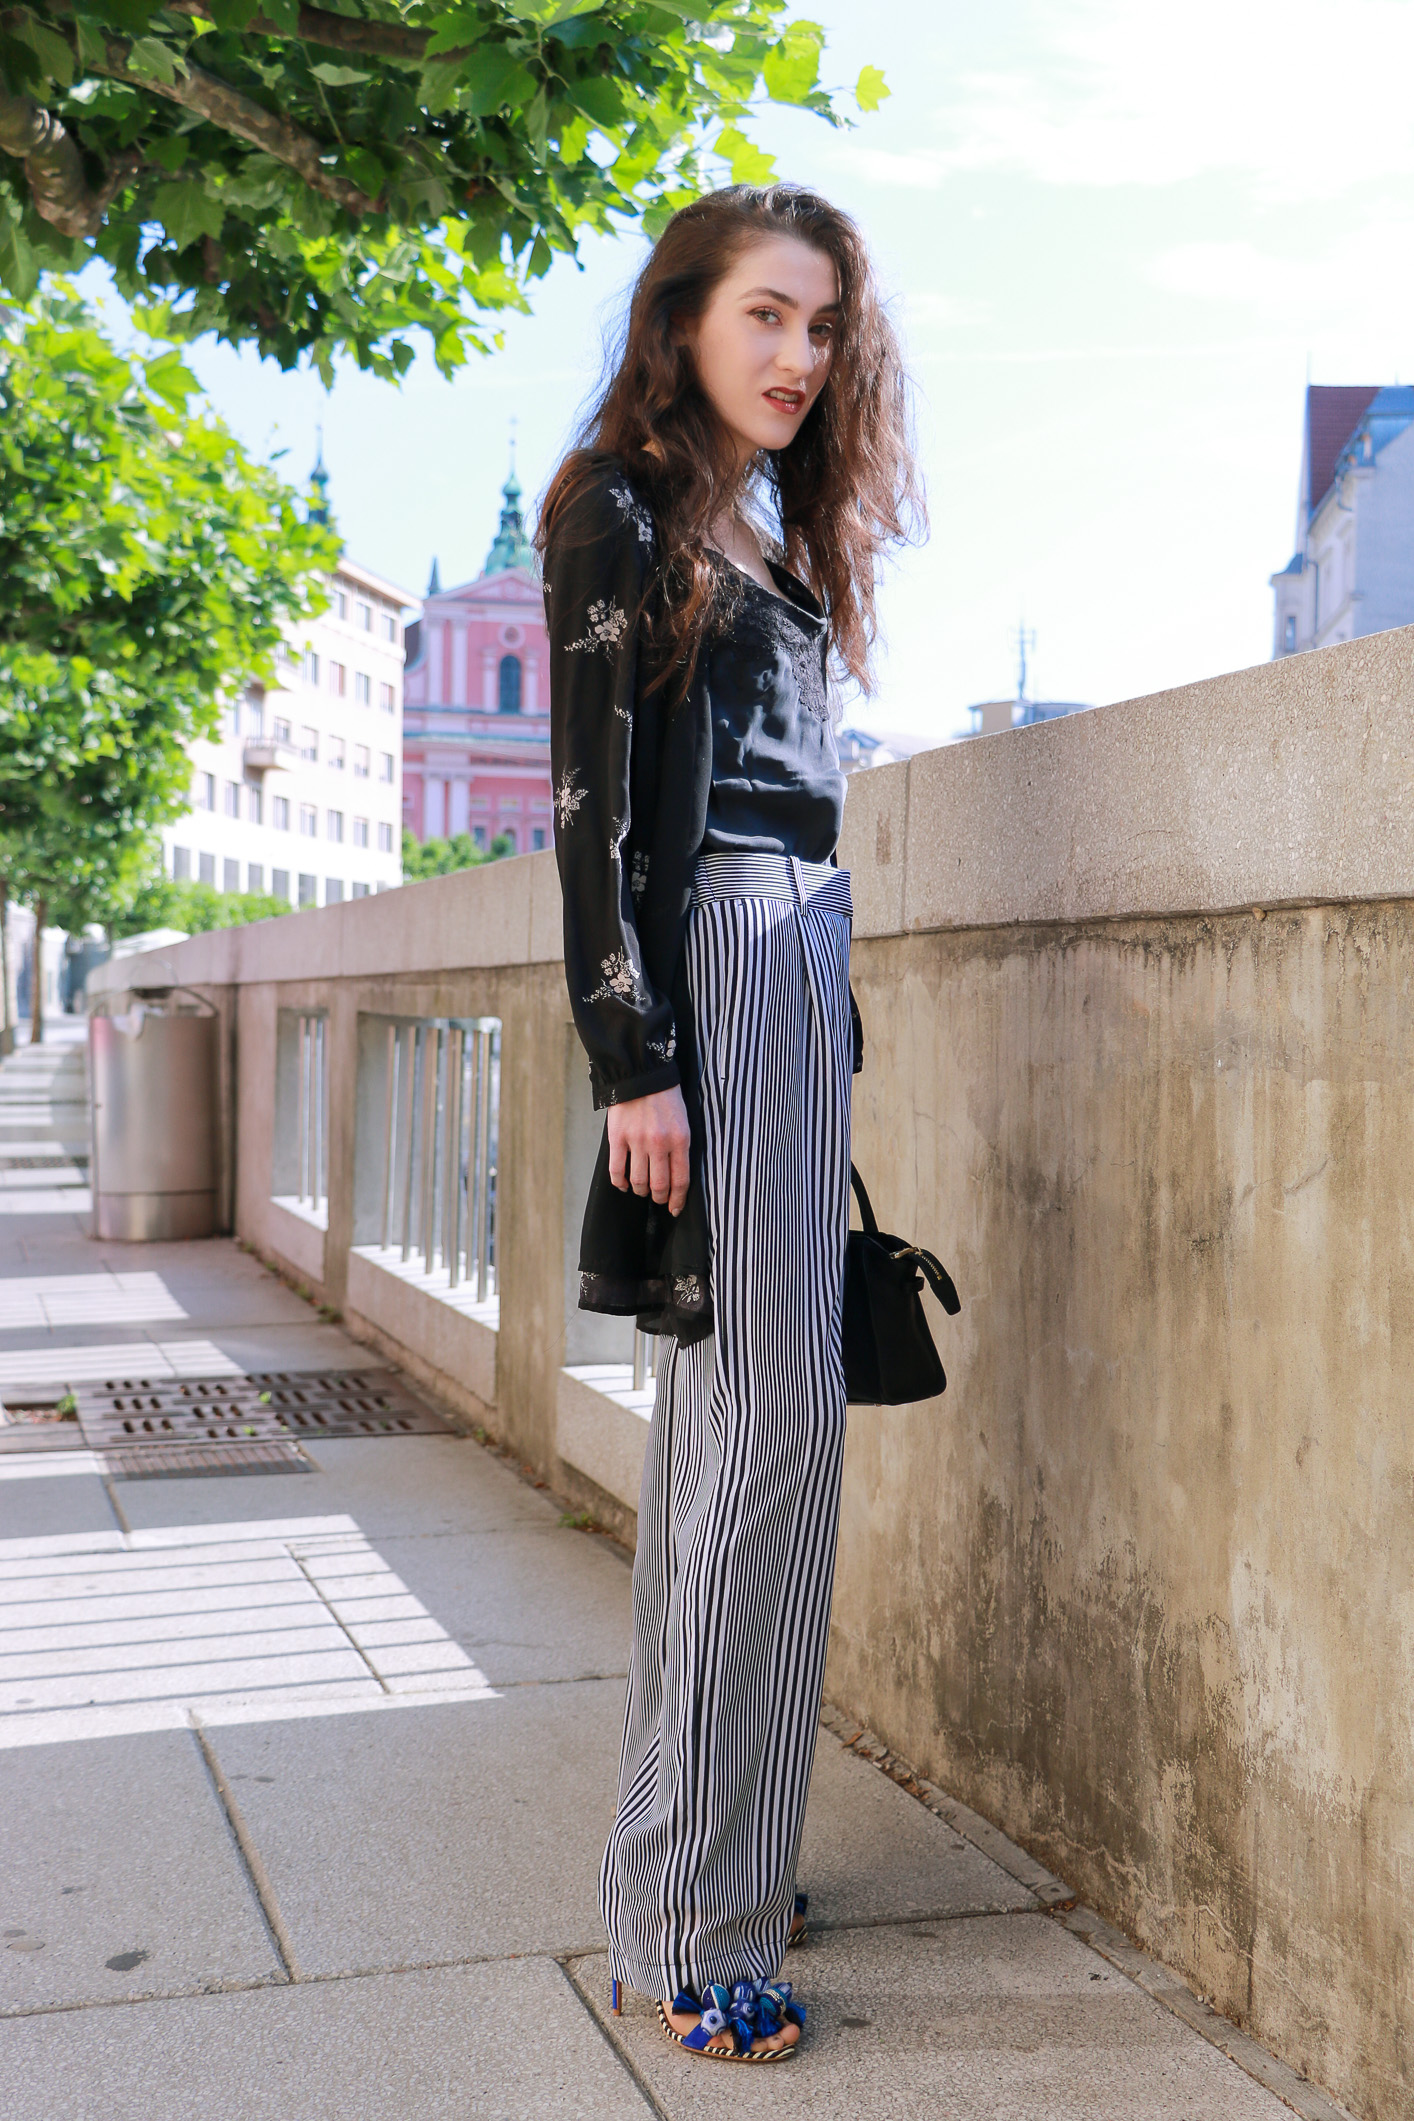 Fashion blogger Veronika Lipar of Brunette From Wall Street sharing how to do layering this summer wearing dark floral shirt dress and wide-leg trousers